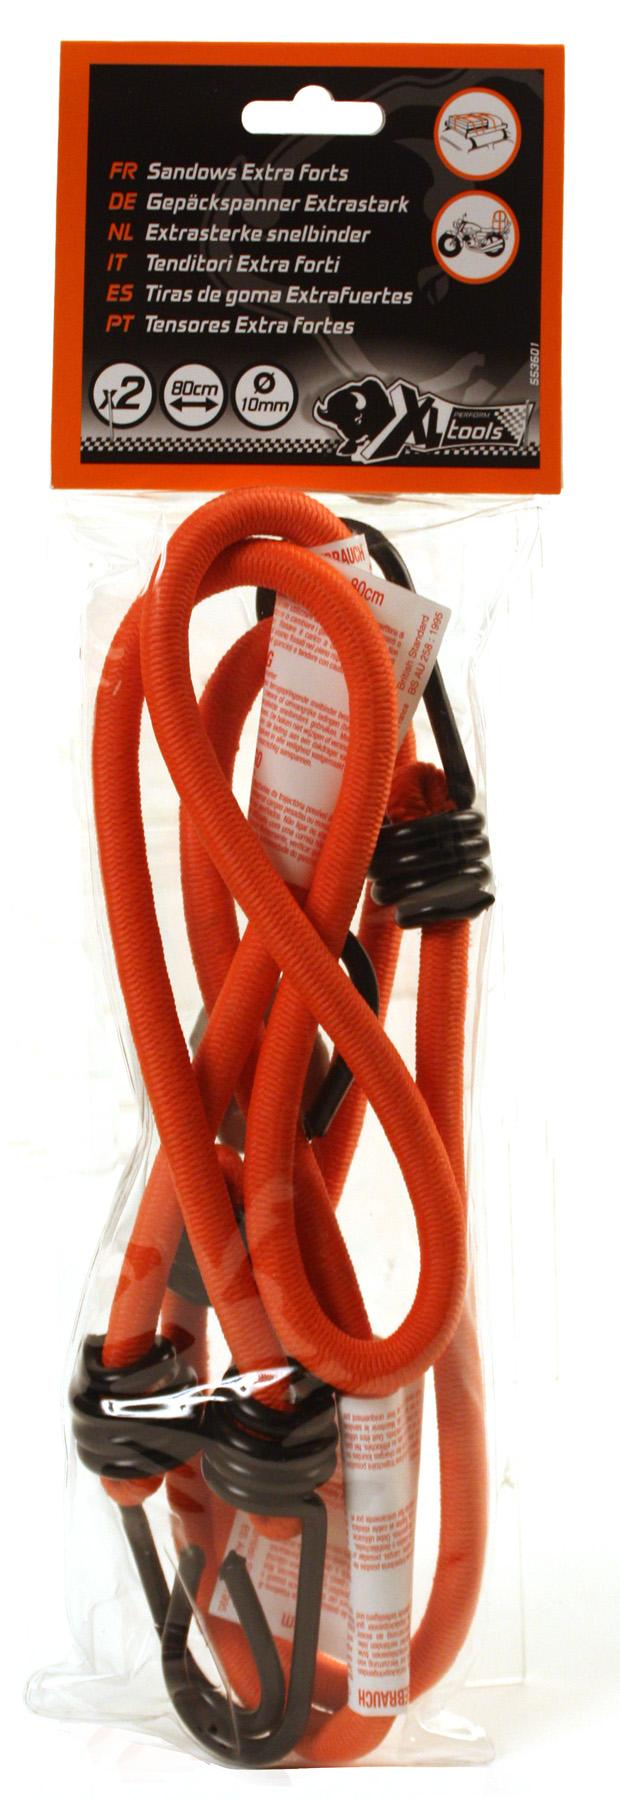 Bungee cords XL 553601 expert knowledge